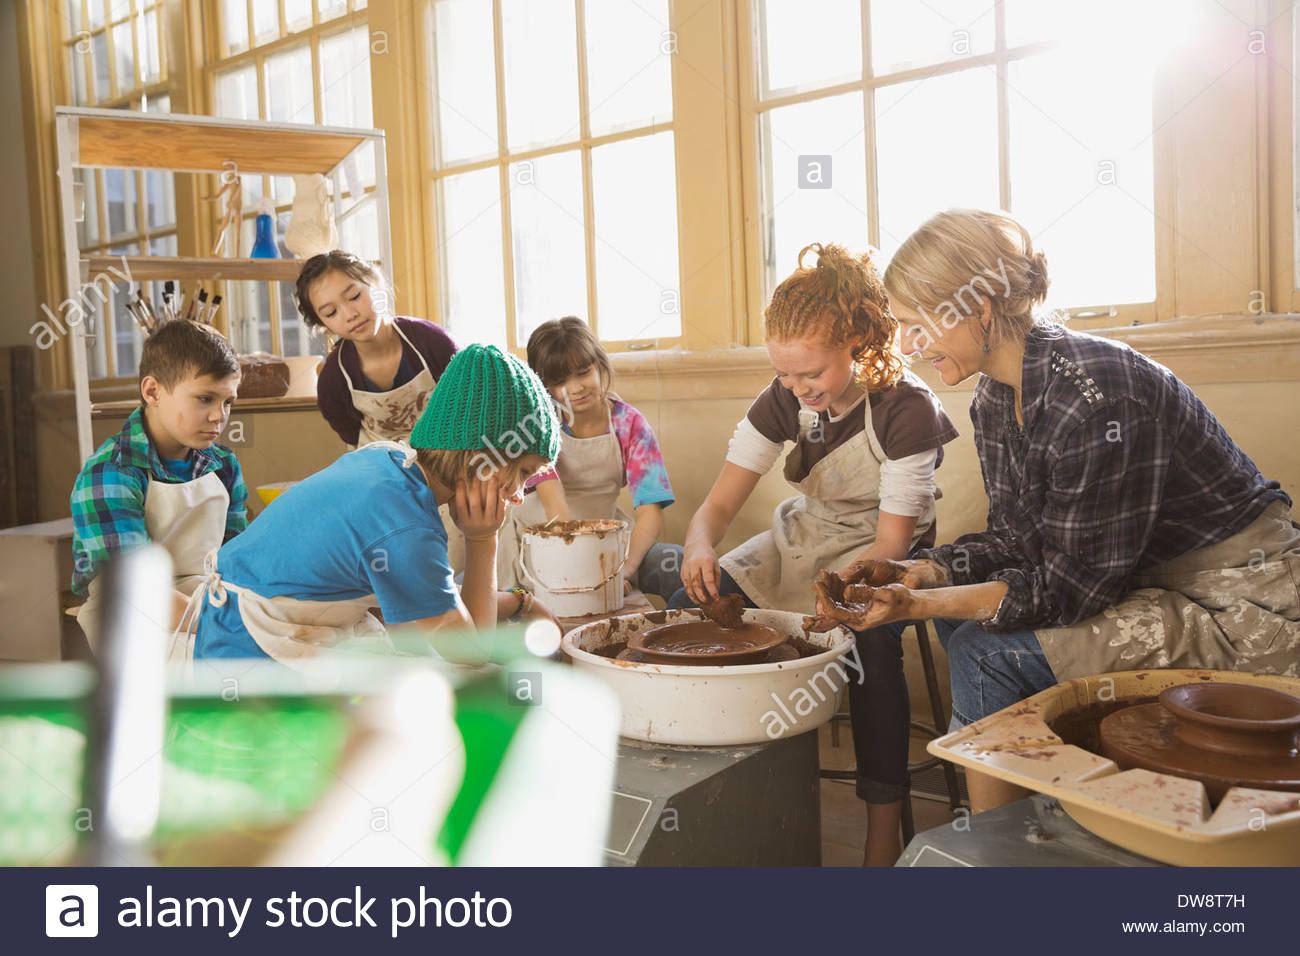 Teacher assisting students in pottery class - Stock Image